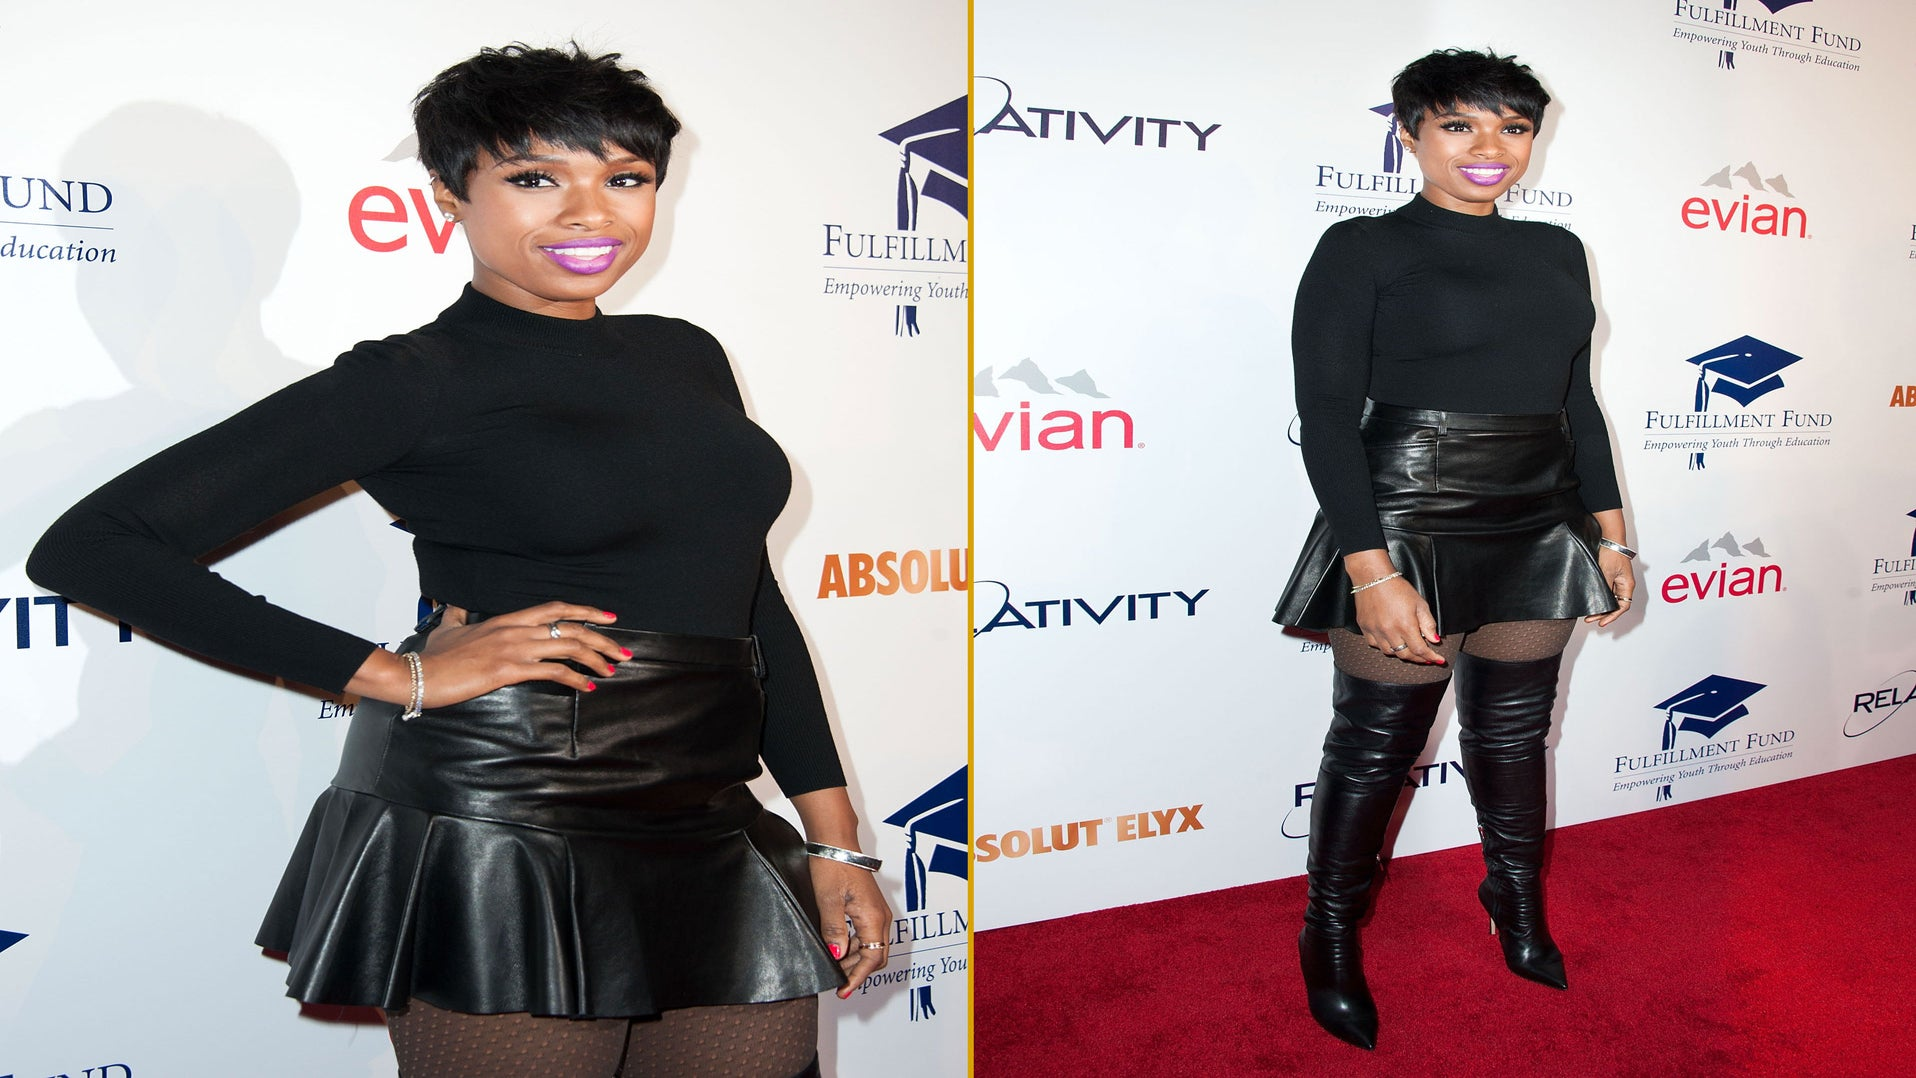 EXCLUSIVE: Jennifer Hudson To Make Her Broadway Debut As Shug Avery in 'The Color Purple'